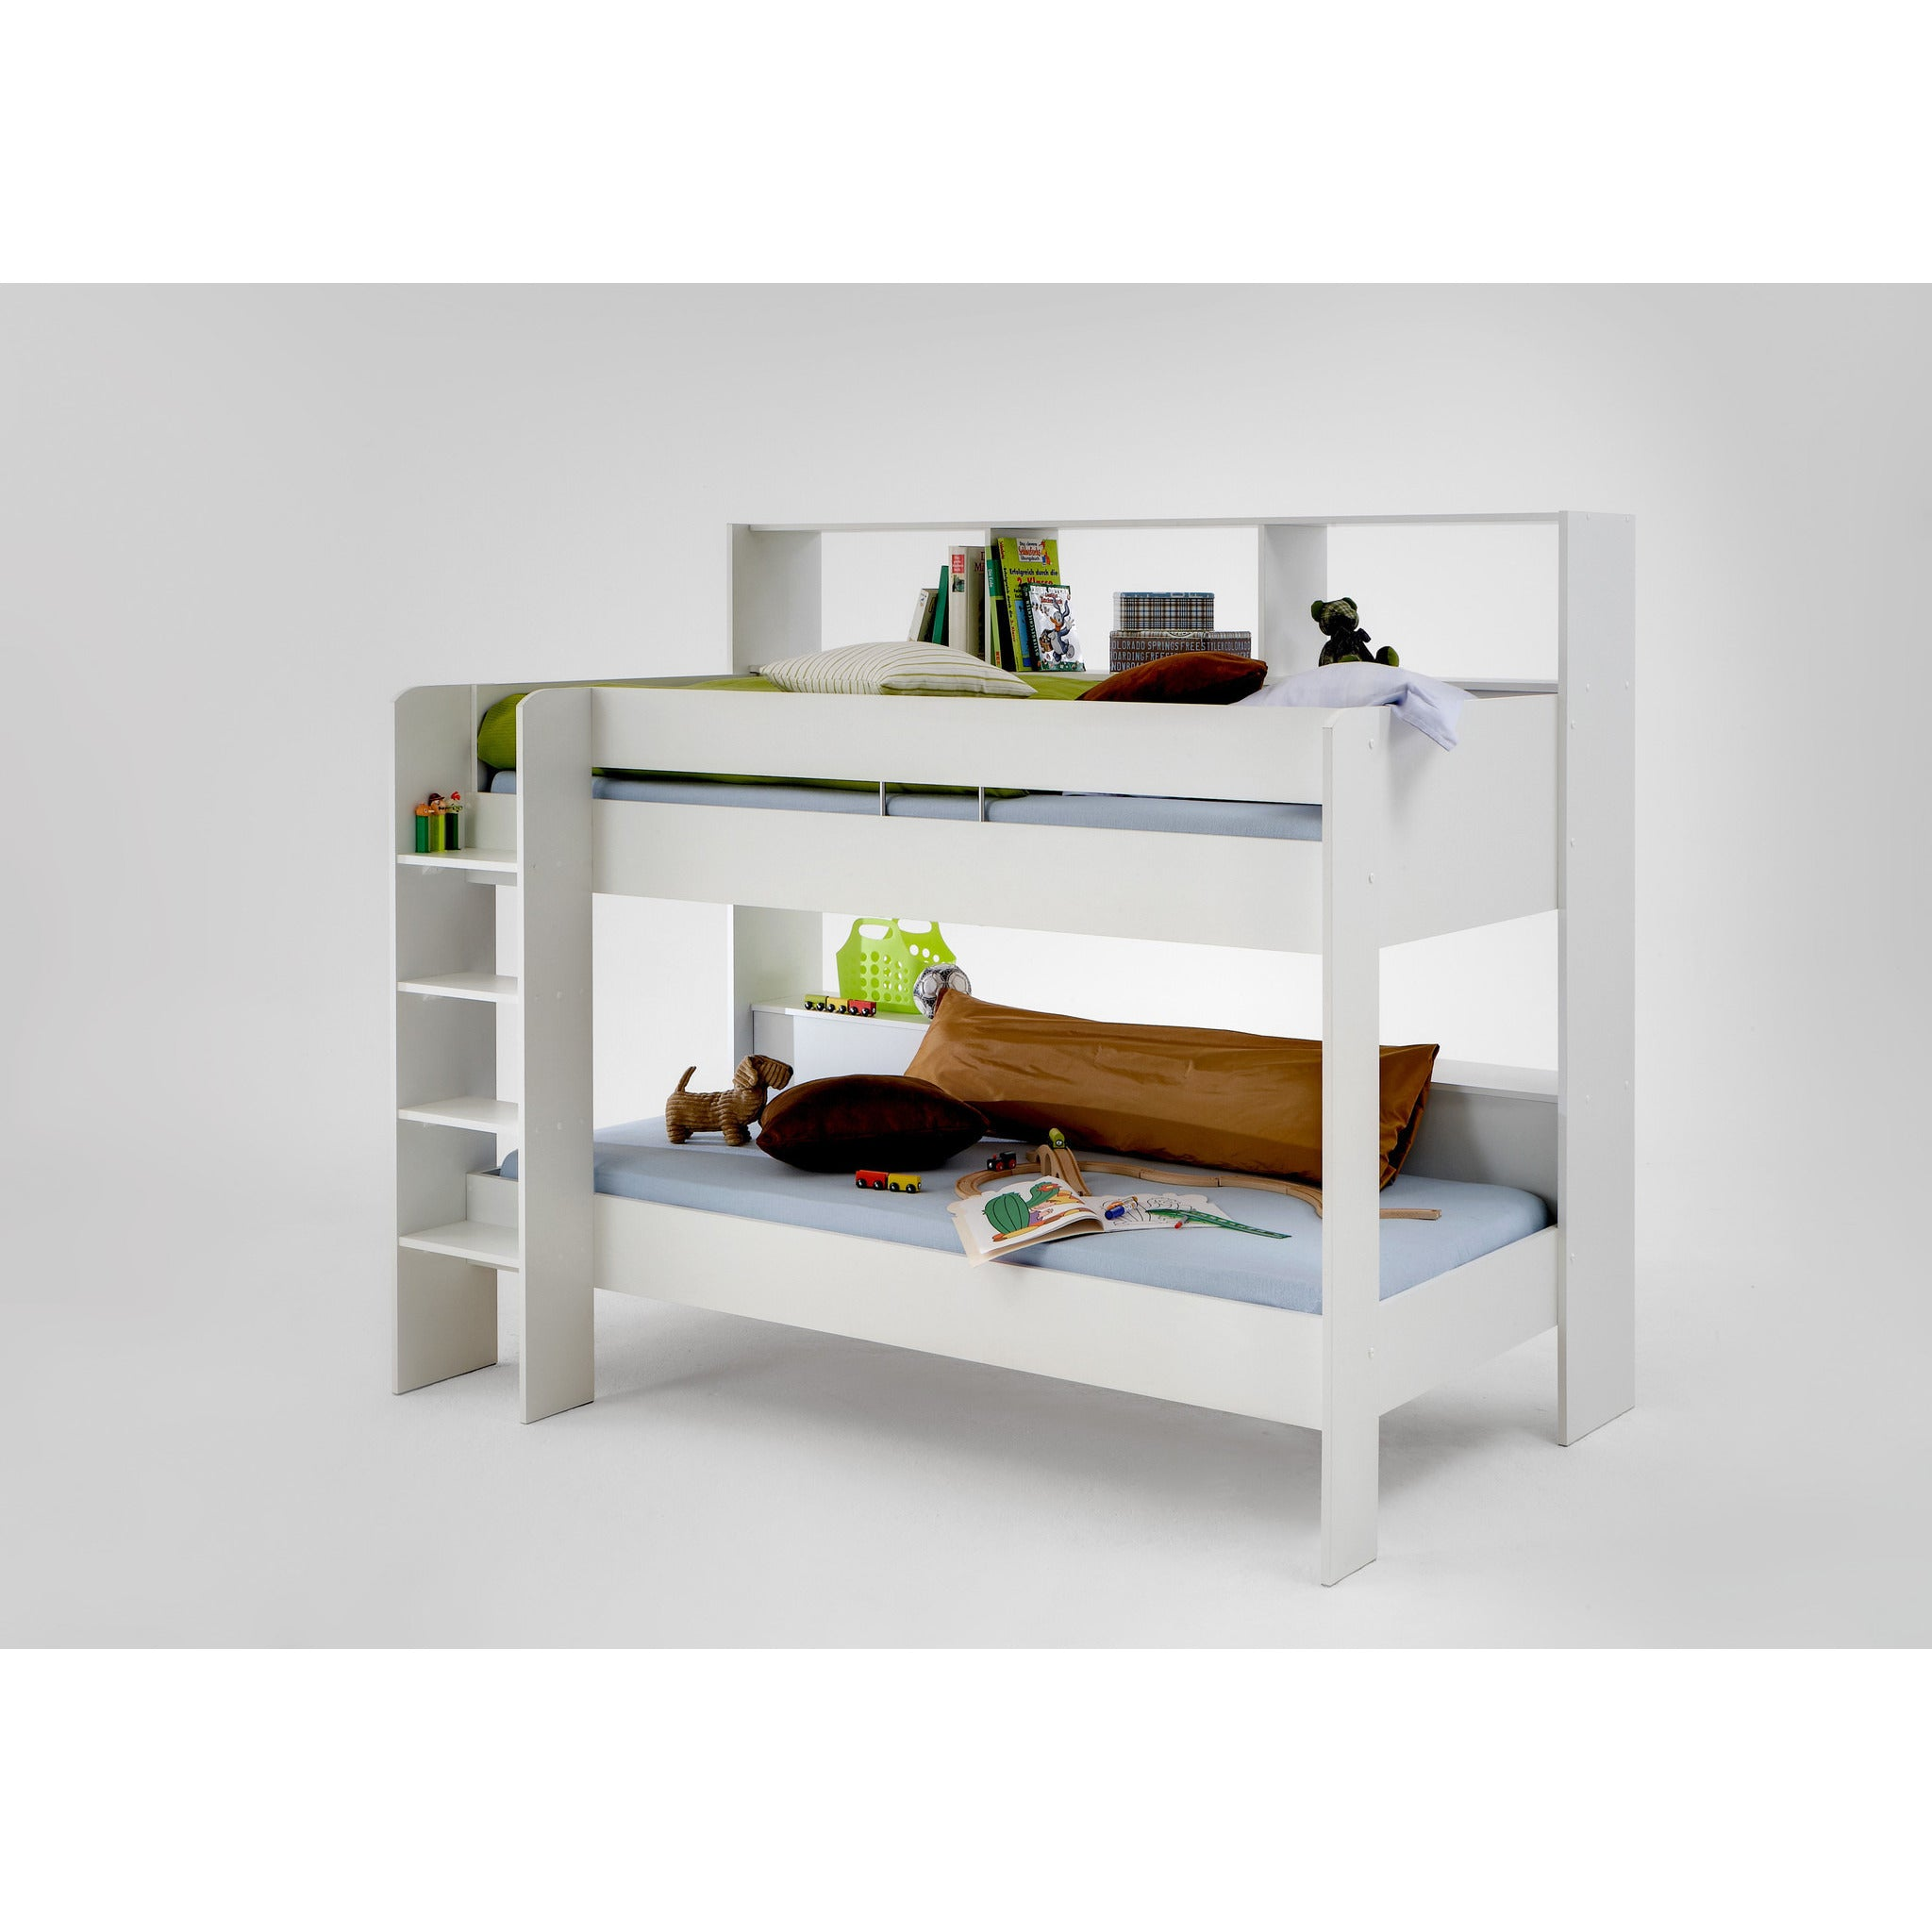 bed white kd products chest victoria kids dresser bedroom or wood twin set for contemporary full panel nightstand